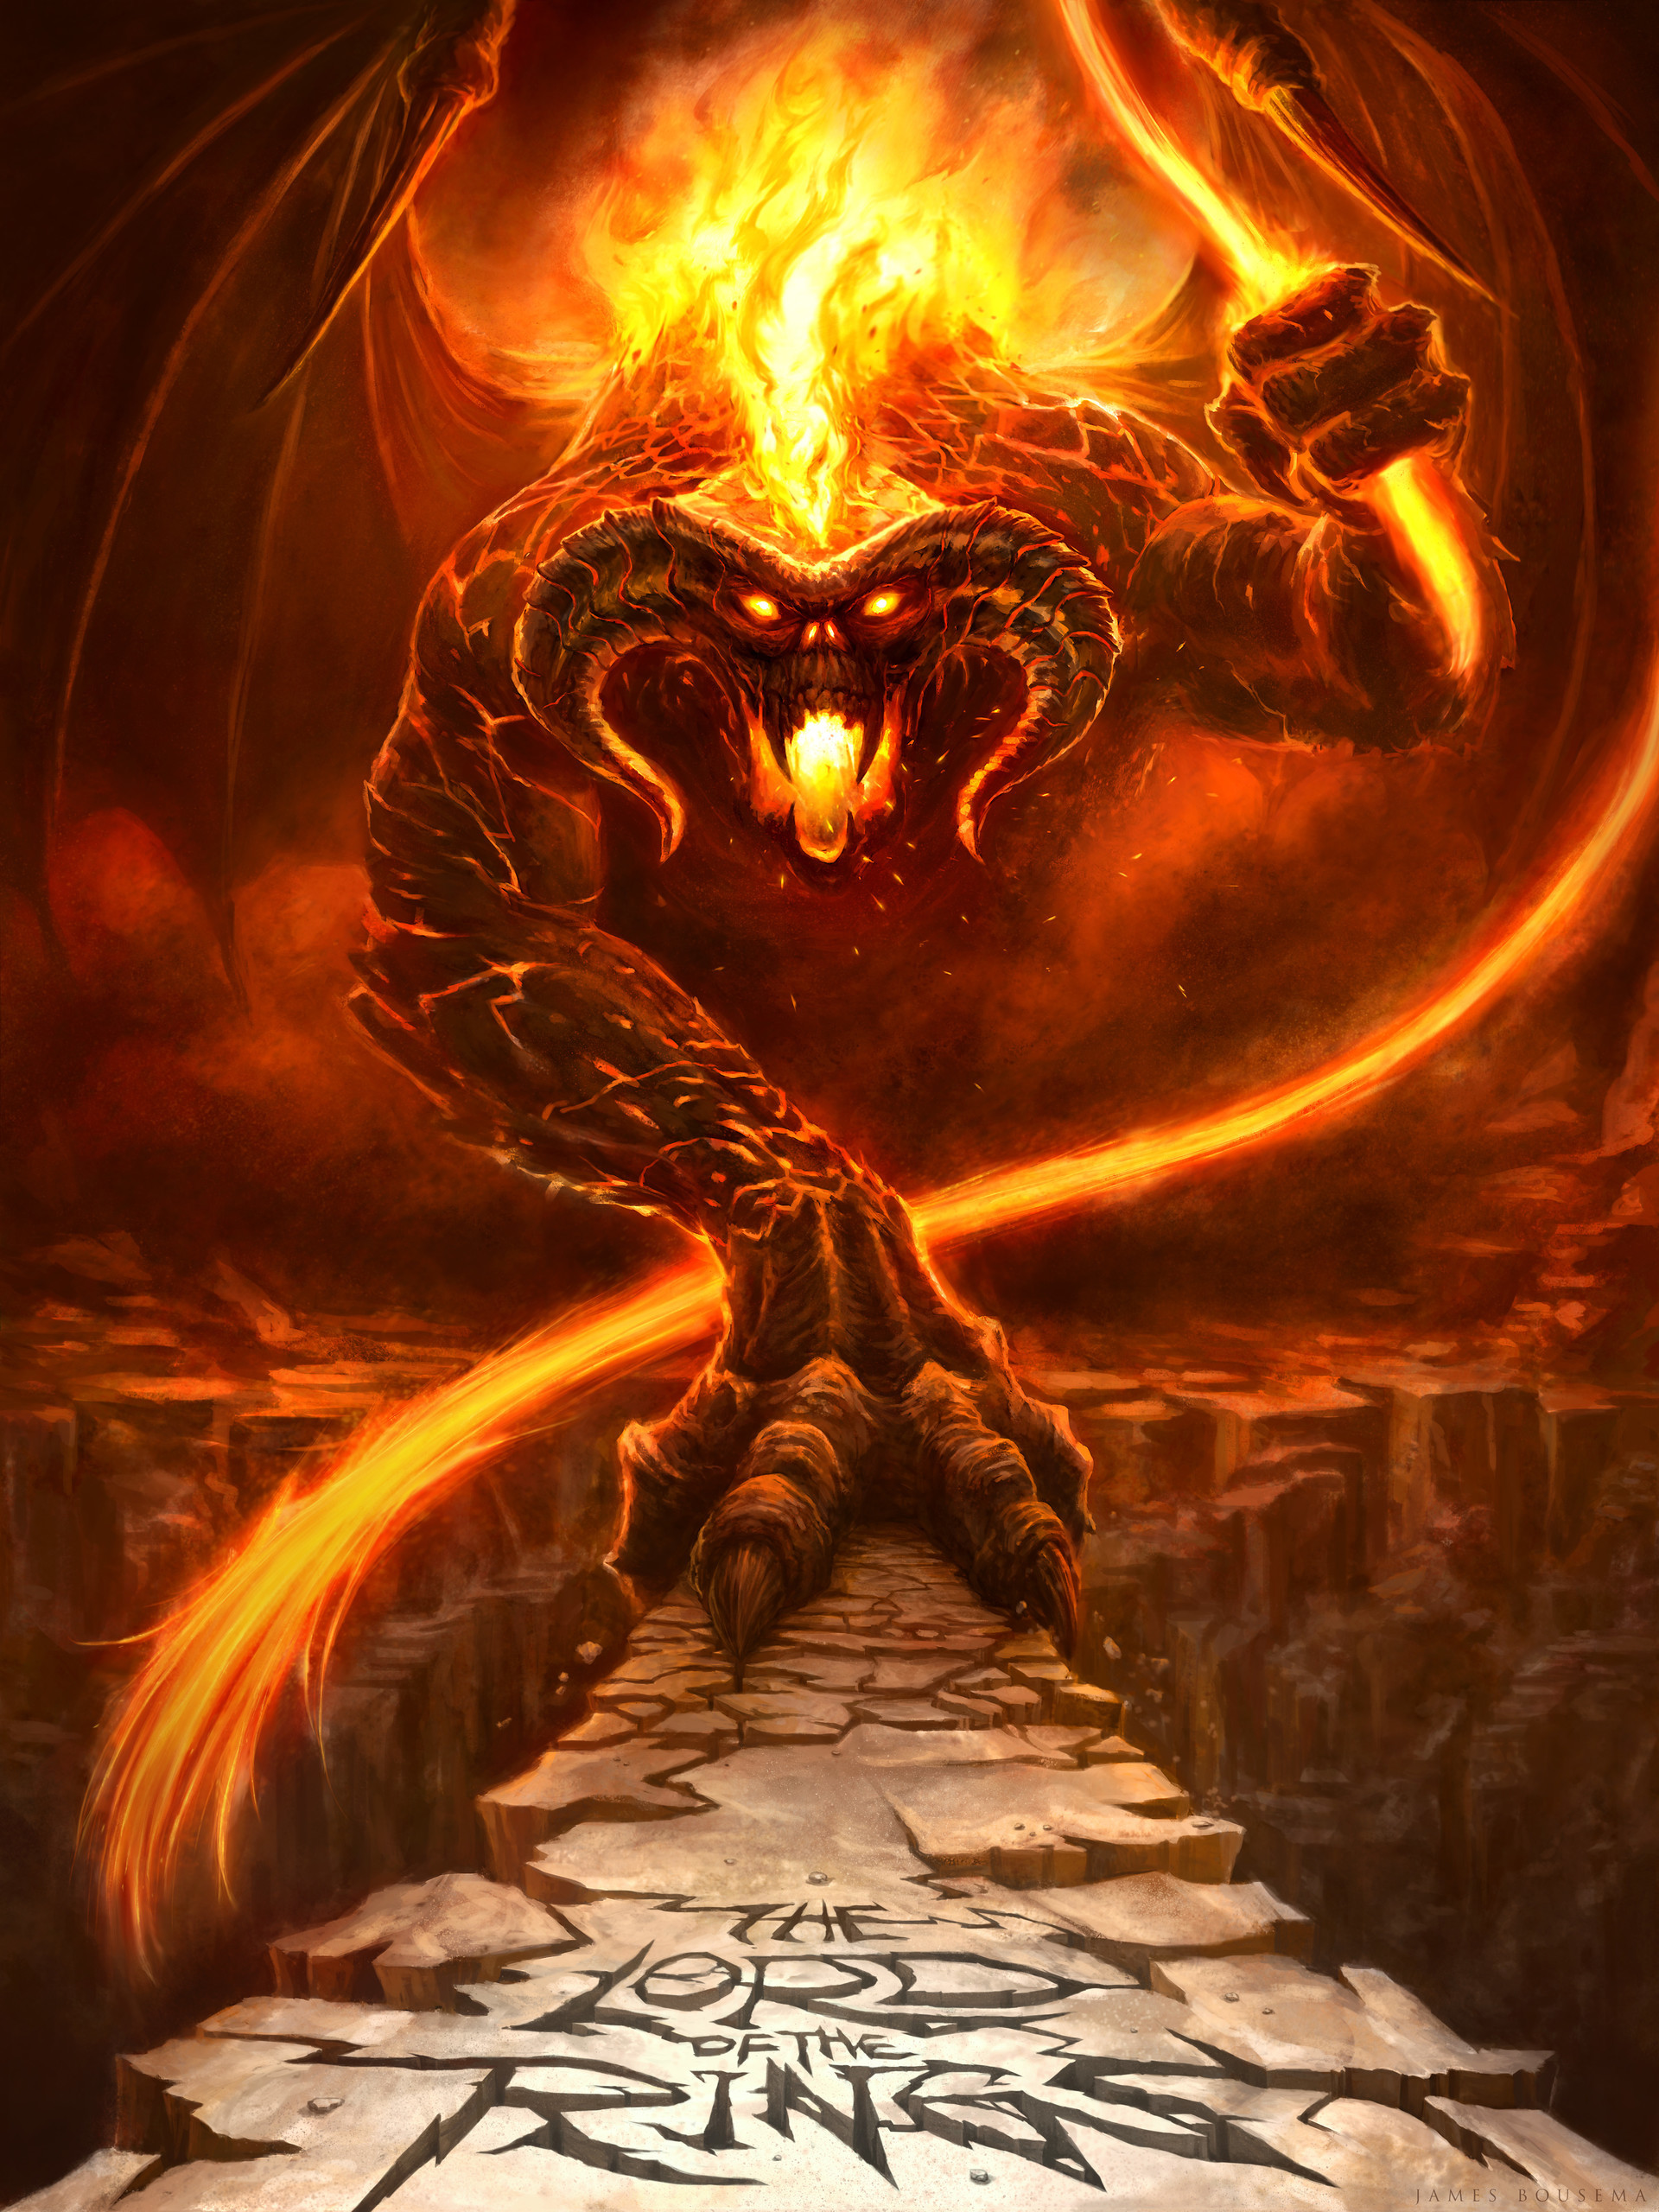 Res: 1920x2560, The Balrog of Morgoth by James Bousema ...